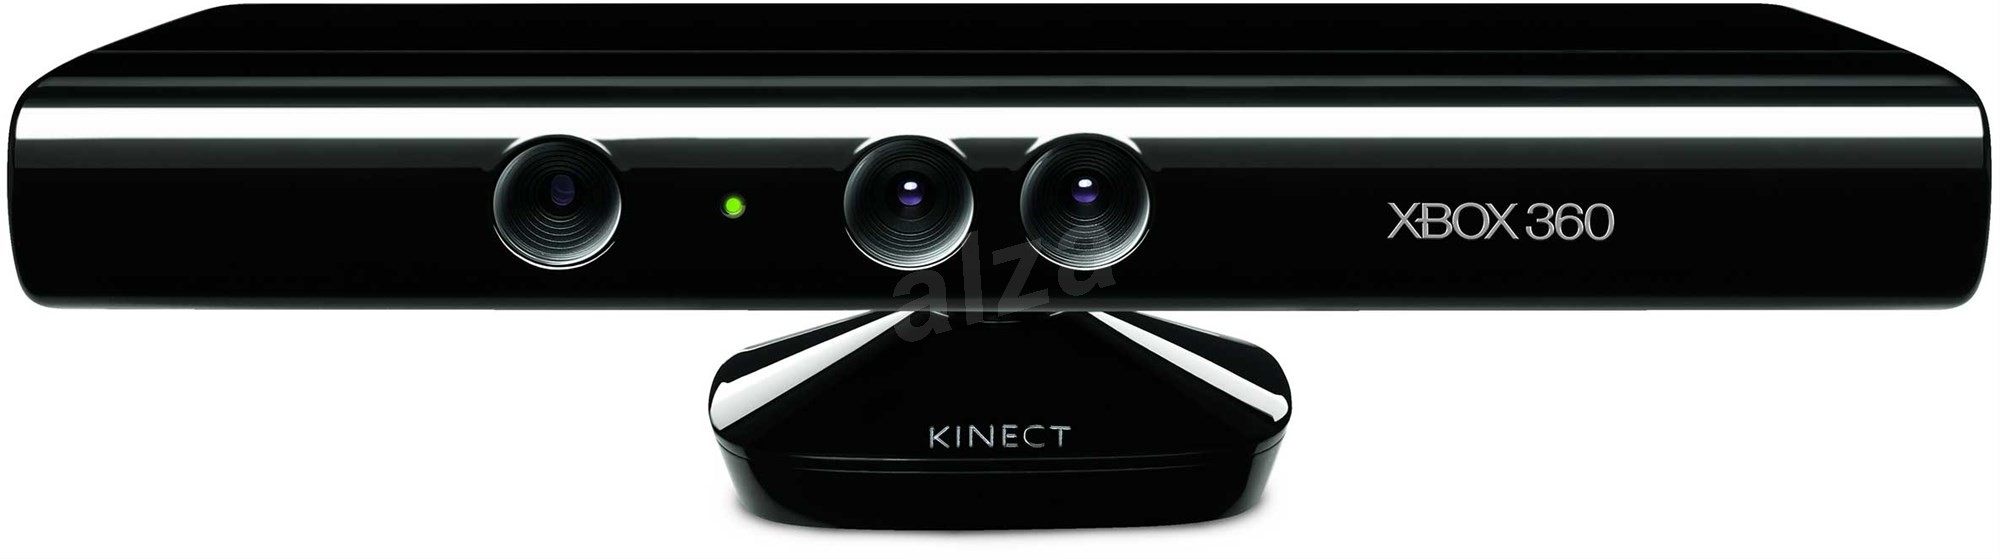 Microsoft xbox 360 250gb kinect bundle reface edition kinect adventures dance central 3 - Xbox 360 console kinect bundle ...